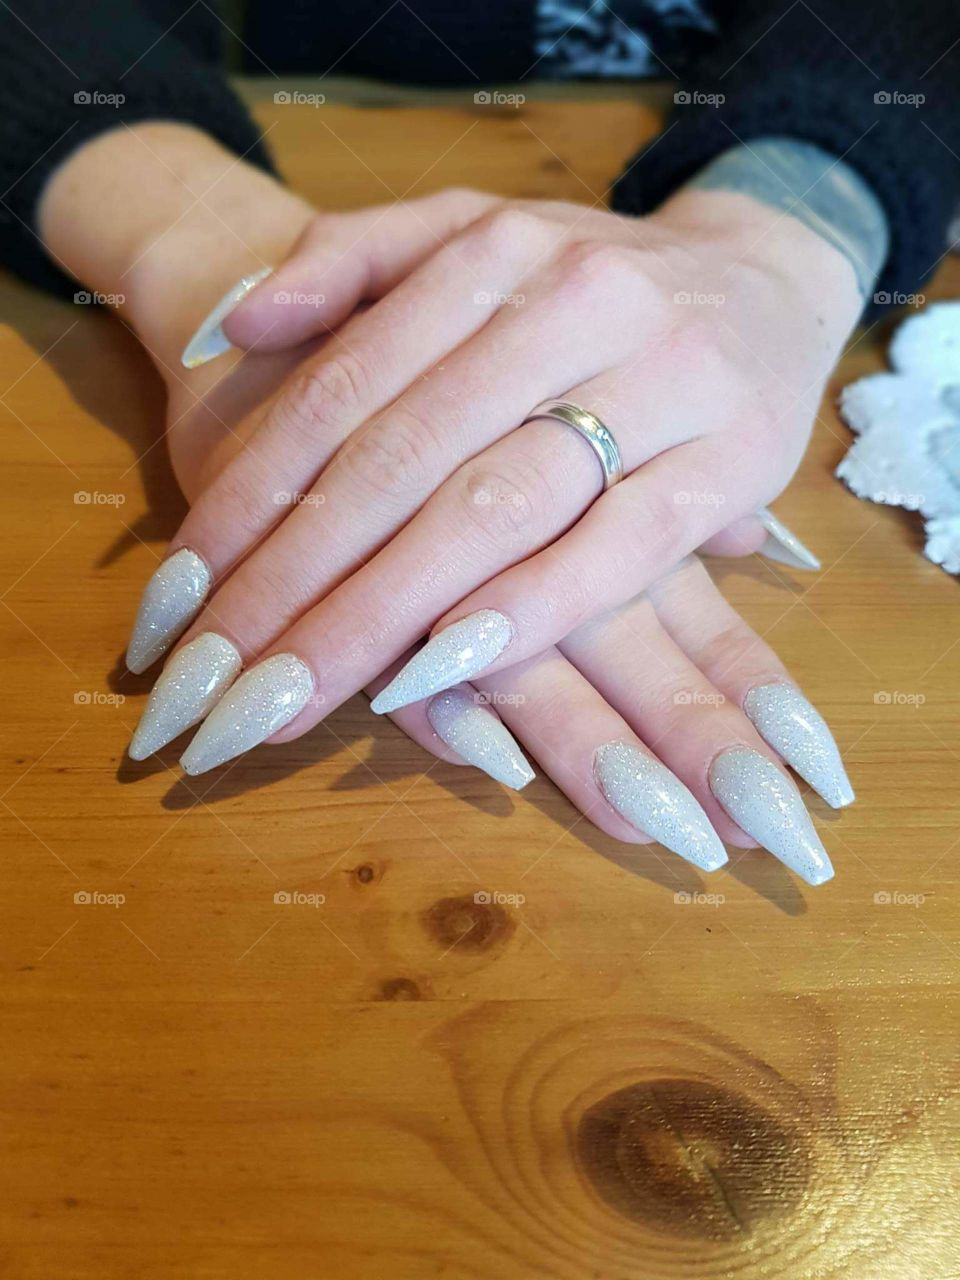 Nails made by me